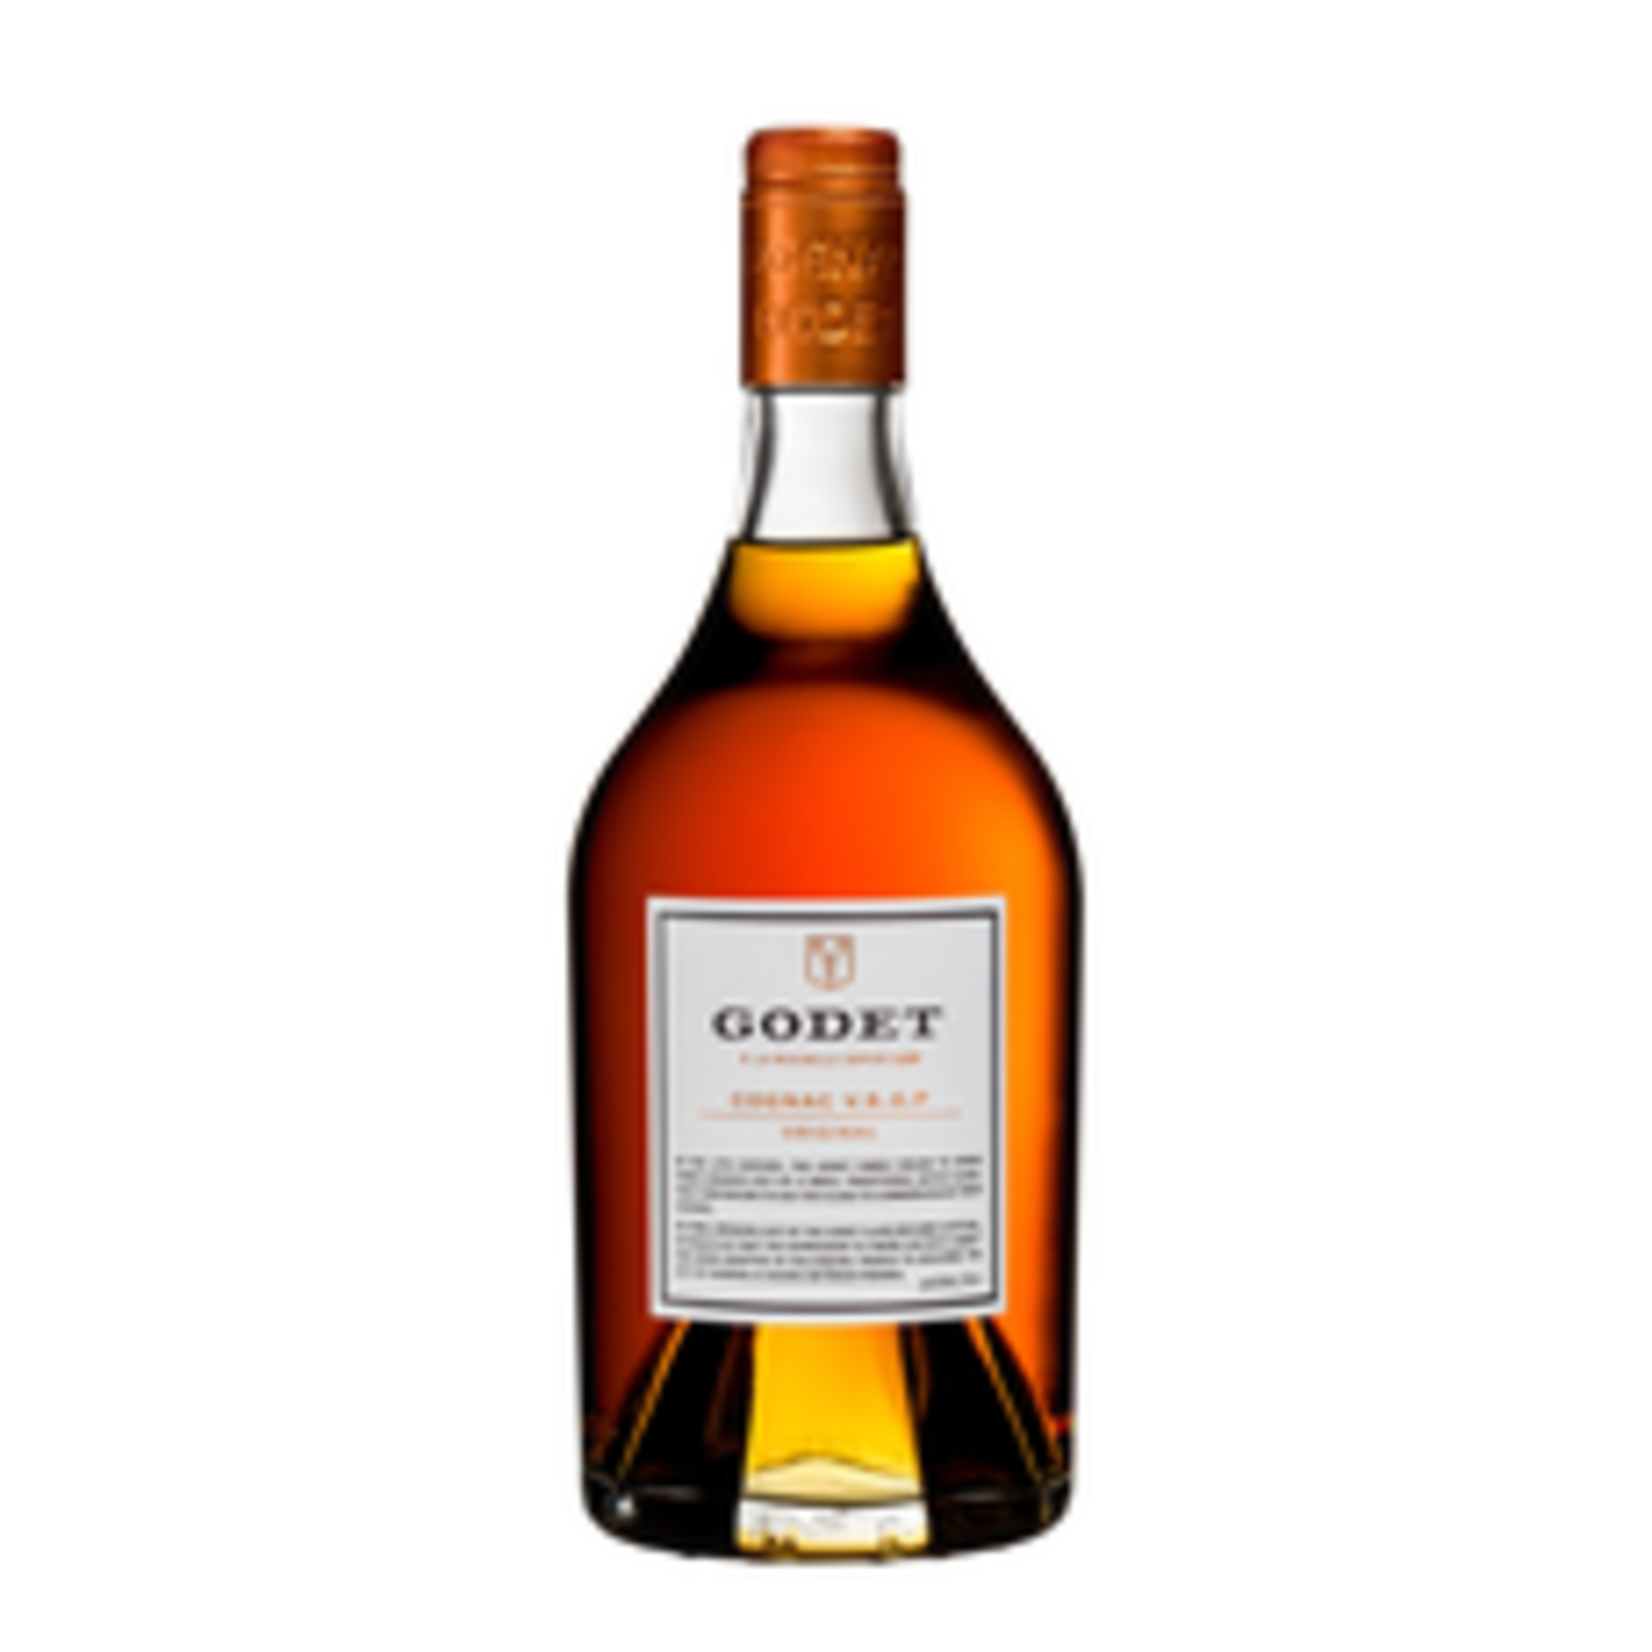 Spirits Godet Cognac VSOP Select Speciale 10 Years 375ml